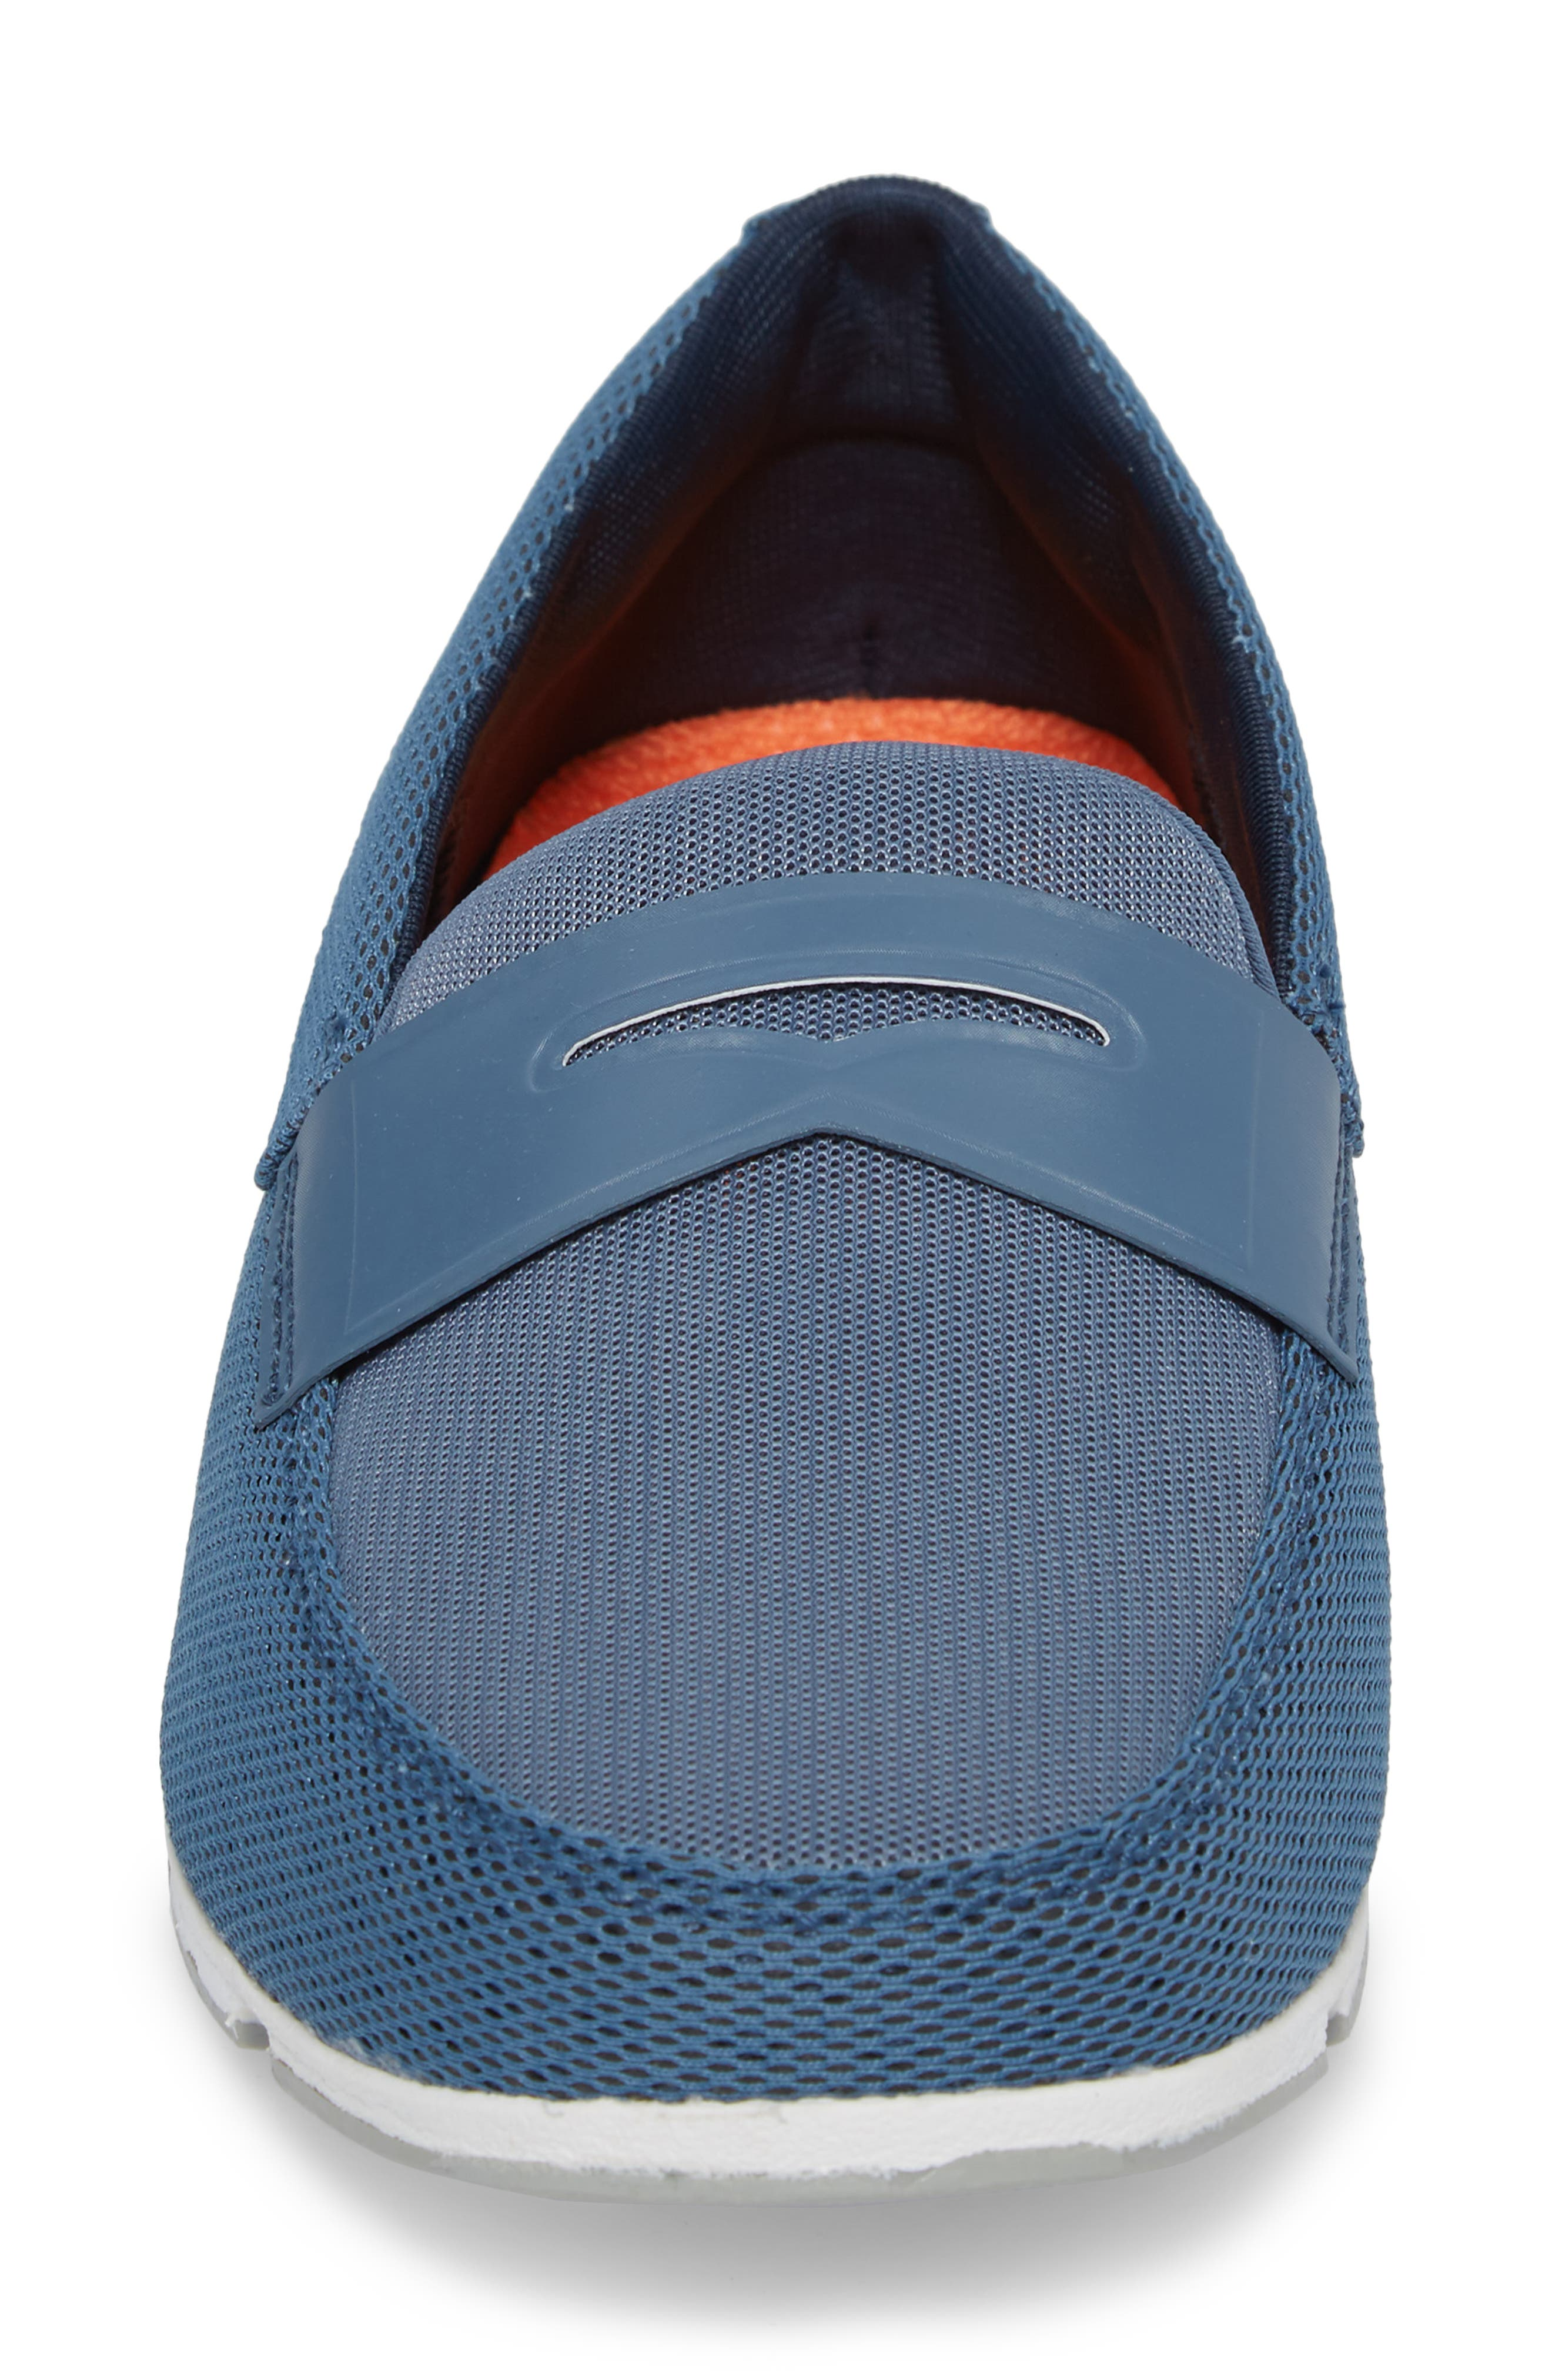 Breeze Penny Loafer,                             Alternate thumbnail 4, color,                             SLATE/ WHITE/ GREY FABRIC